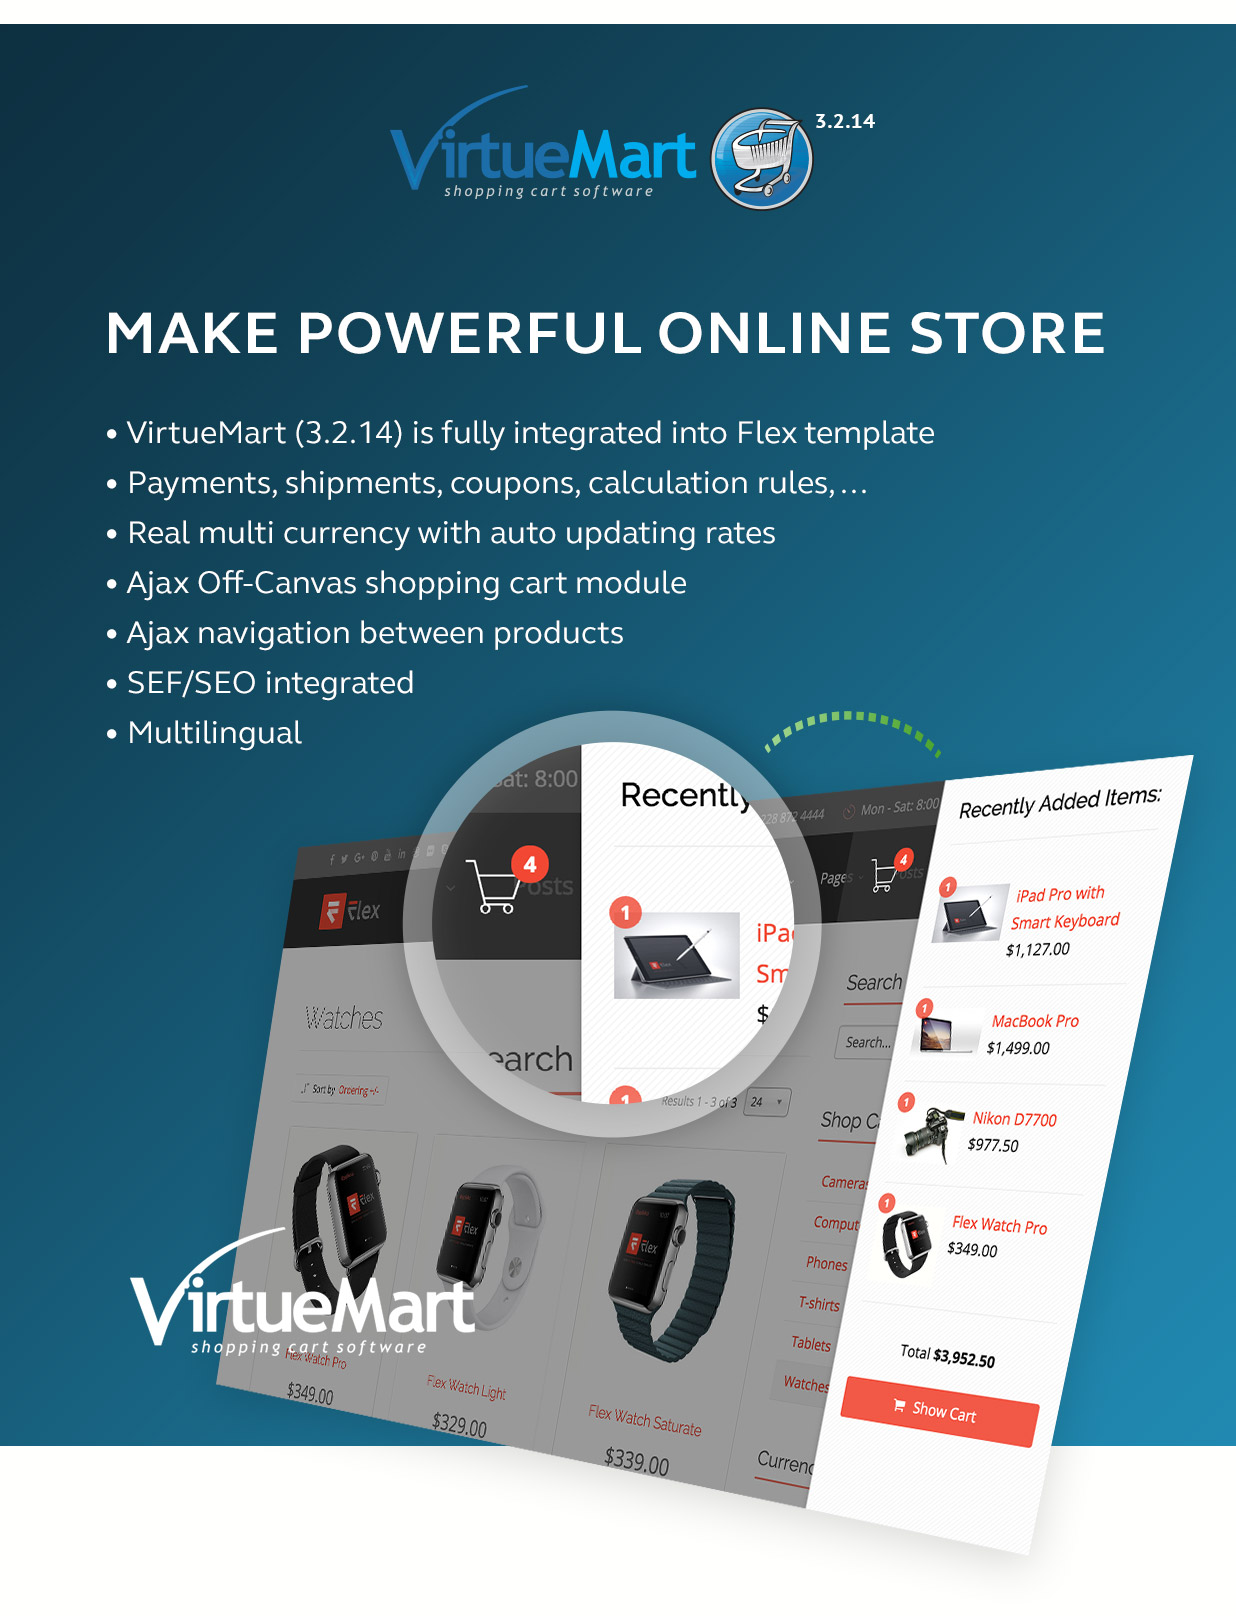 Flex - Most Flexible Joomla template with Virtuemart